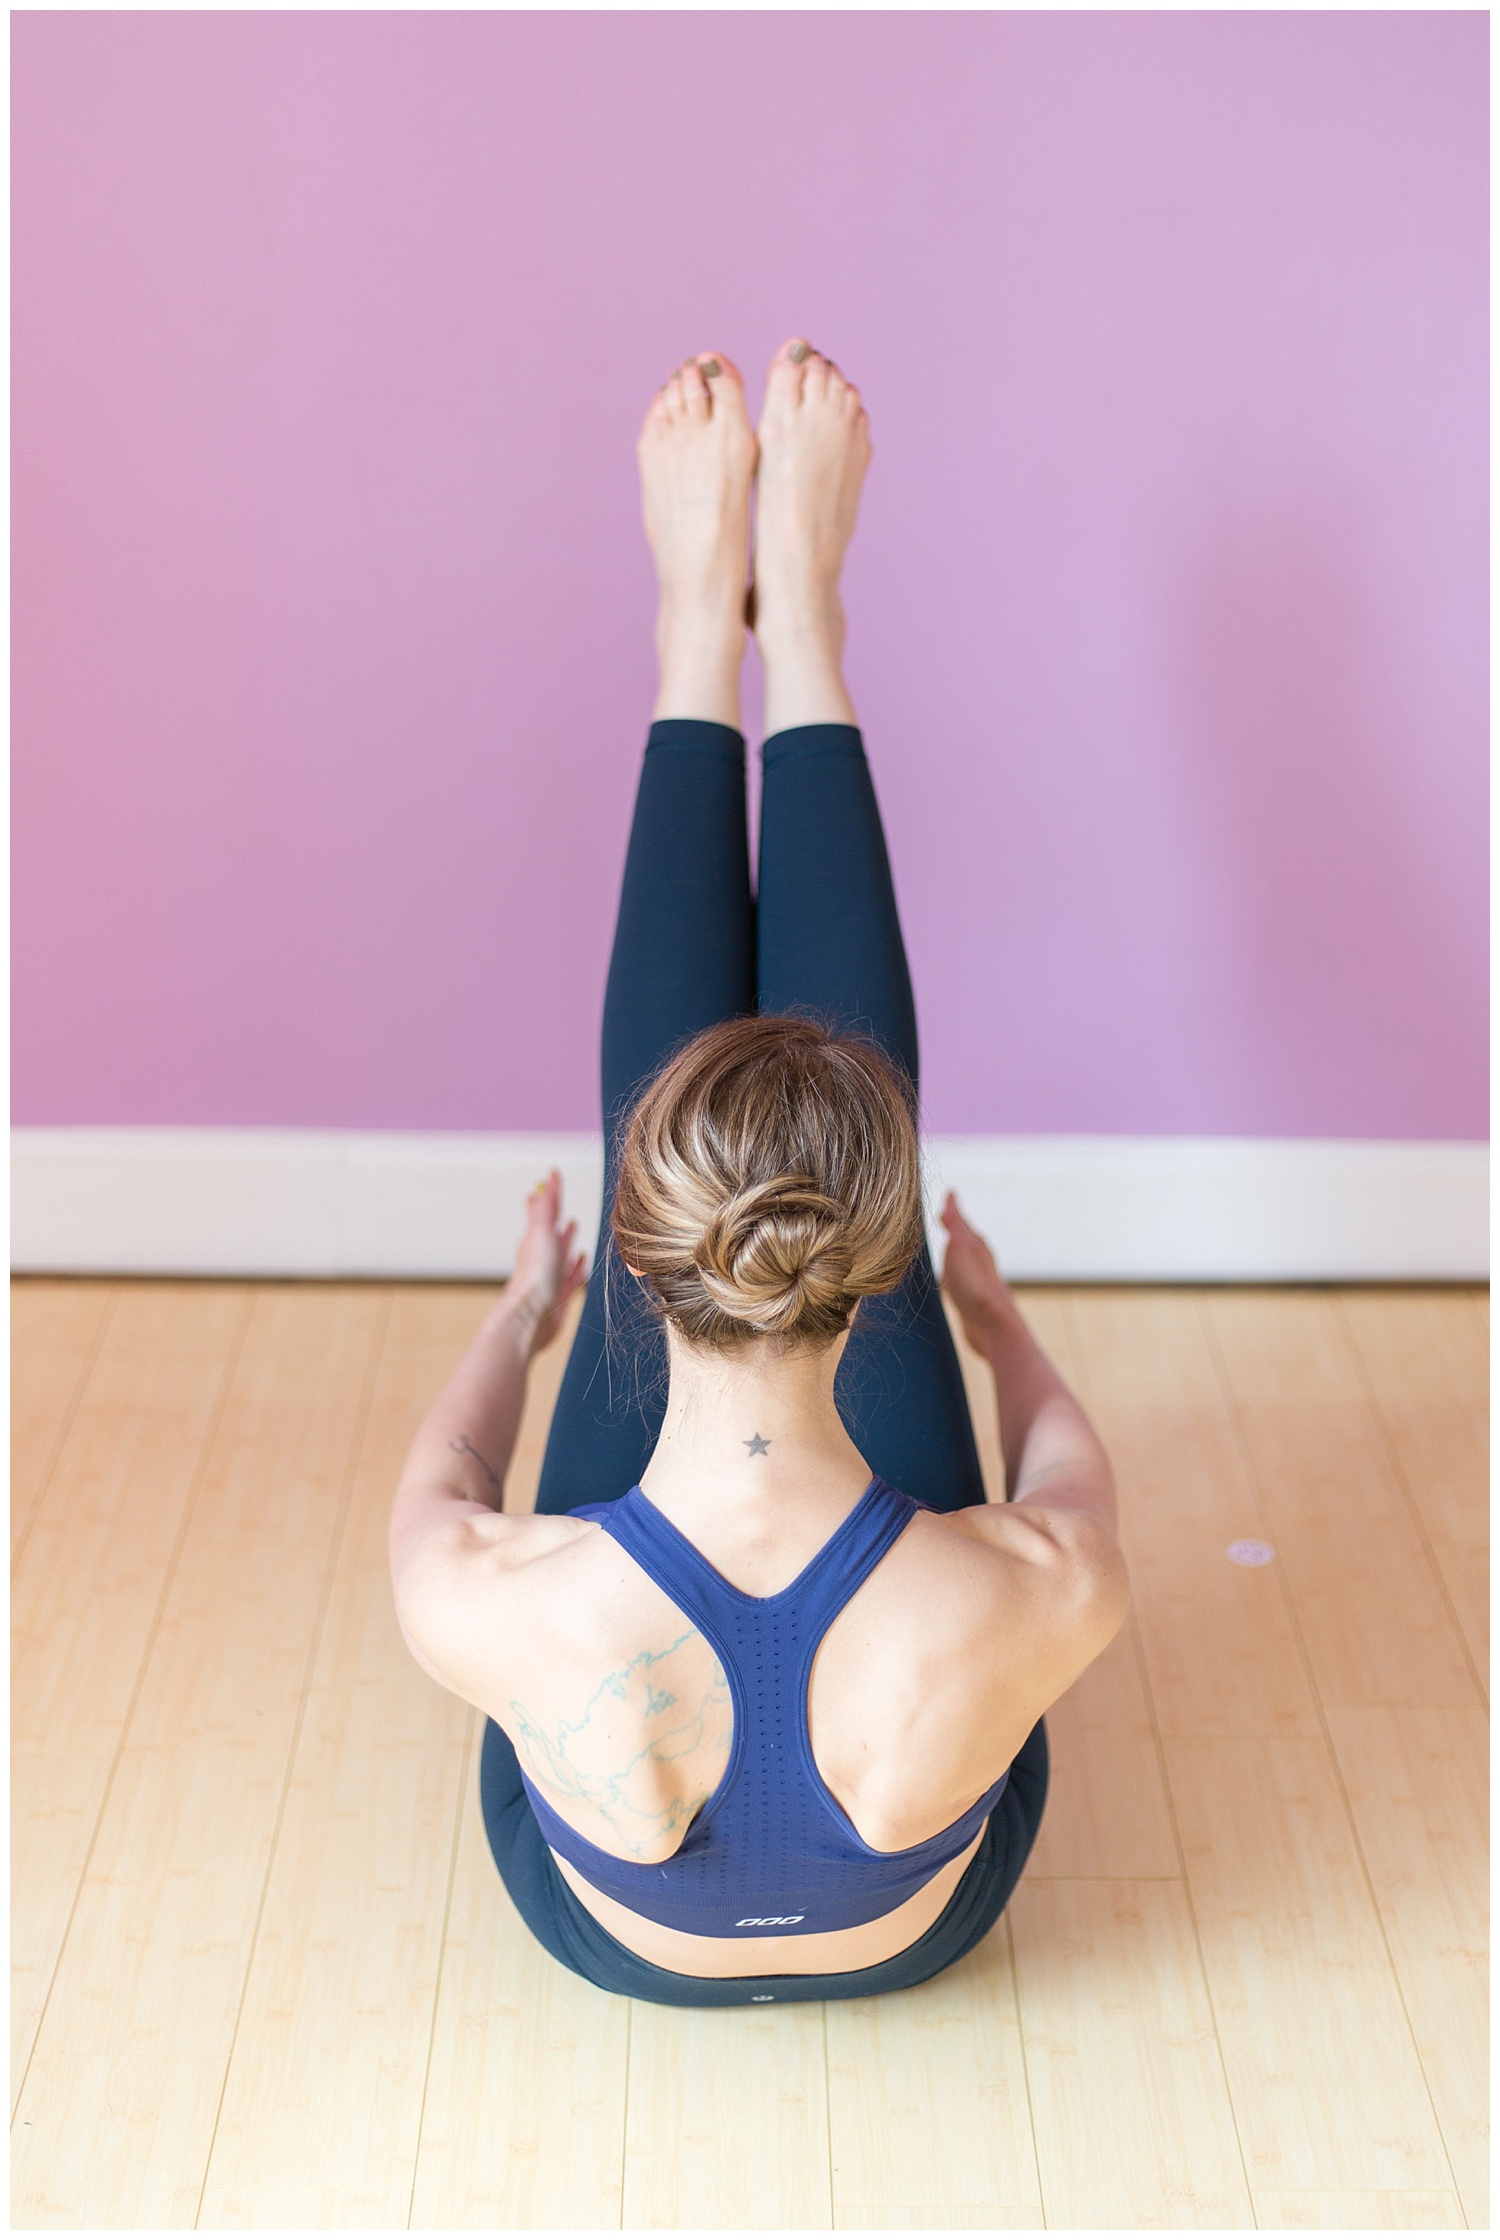 emily-belson-photography-dc-yoga-07.jpg